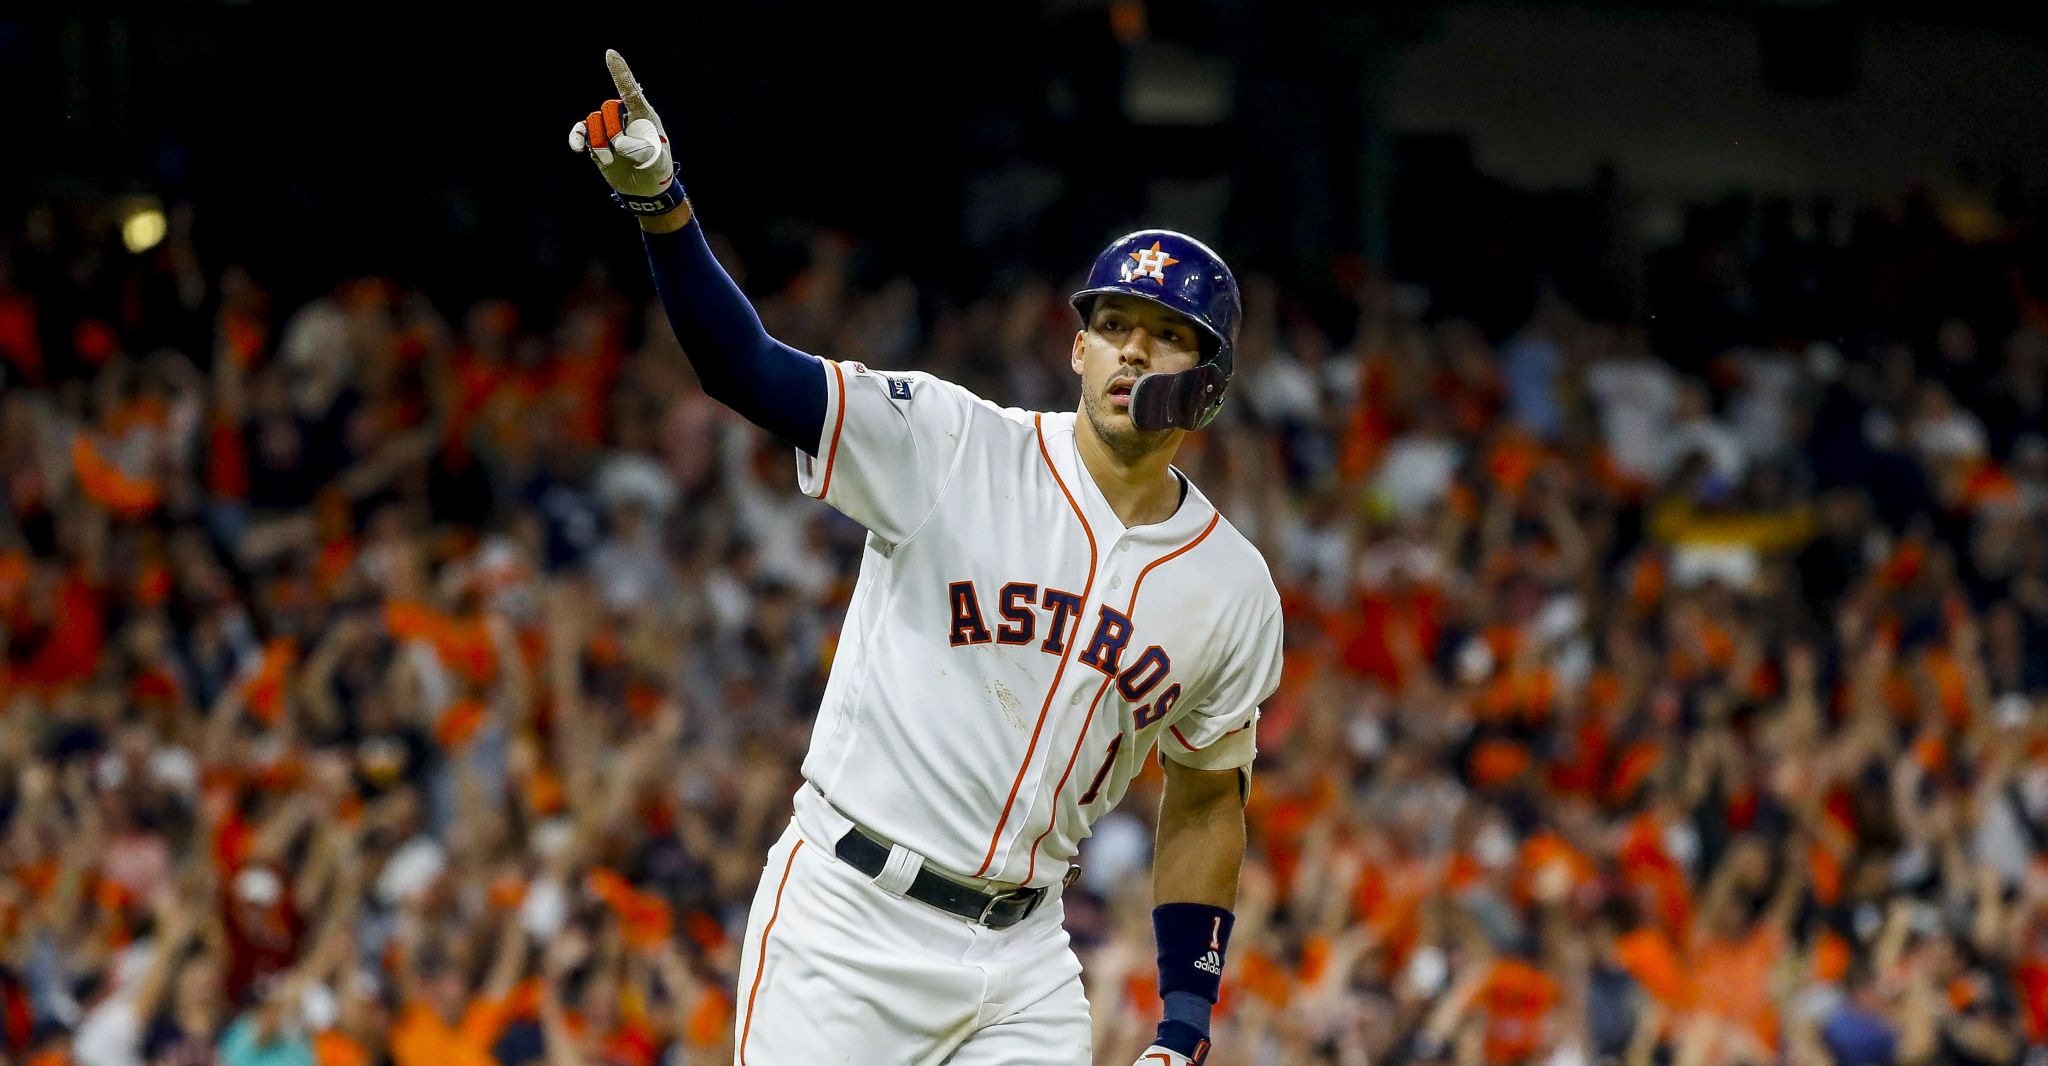 One swing and a magic finish for Astros, Carlos Correa